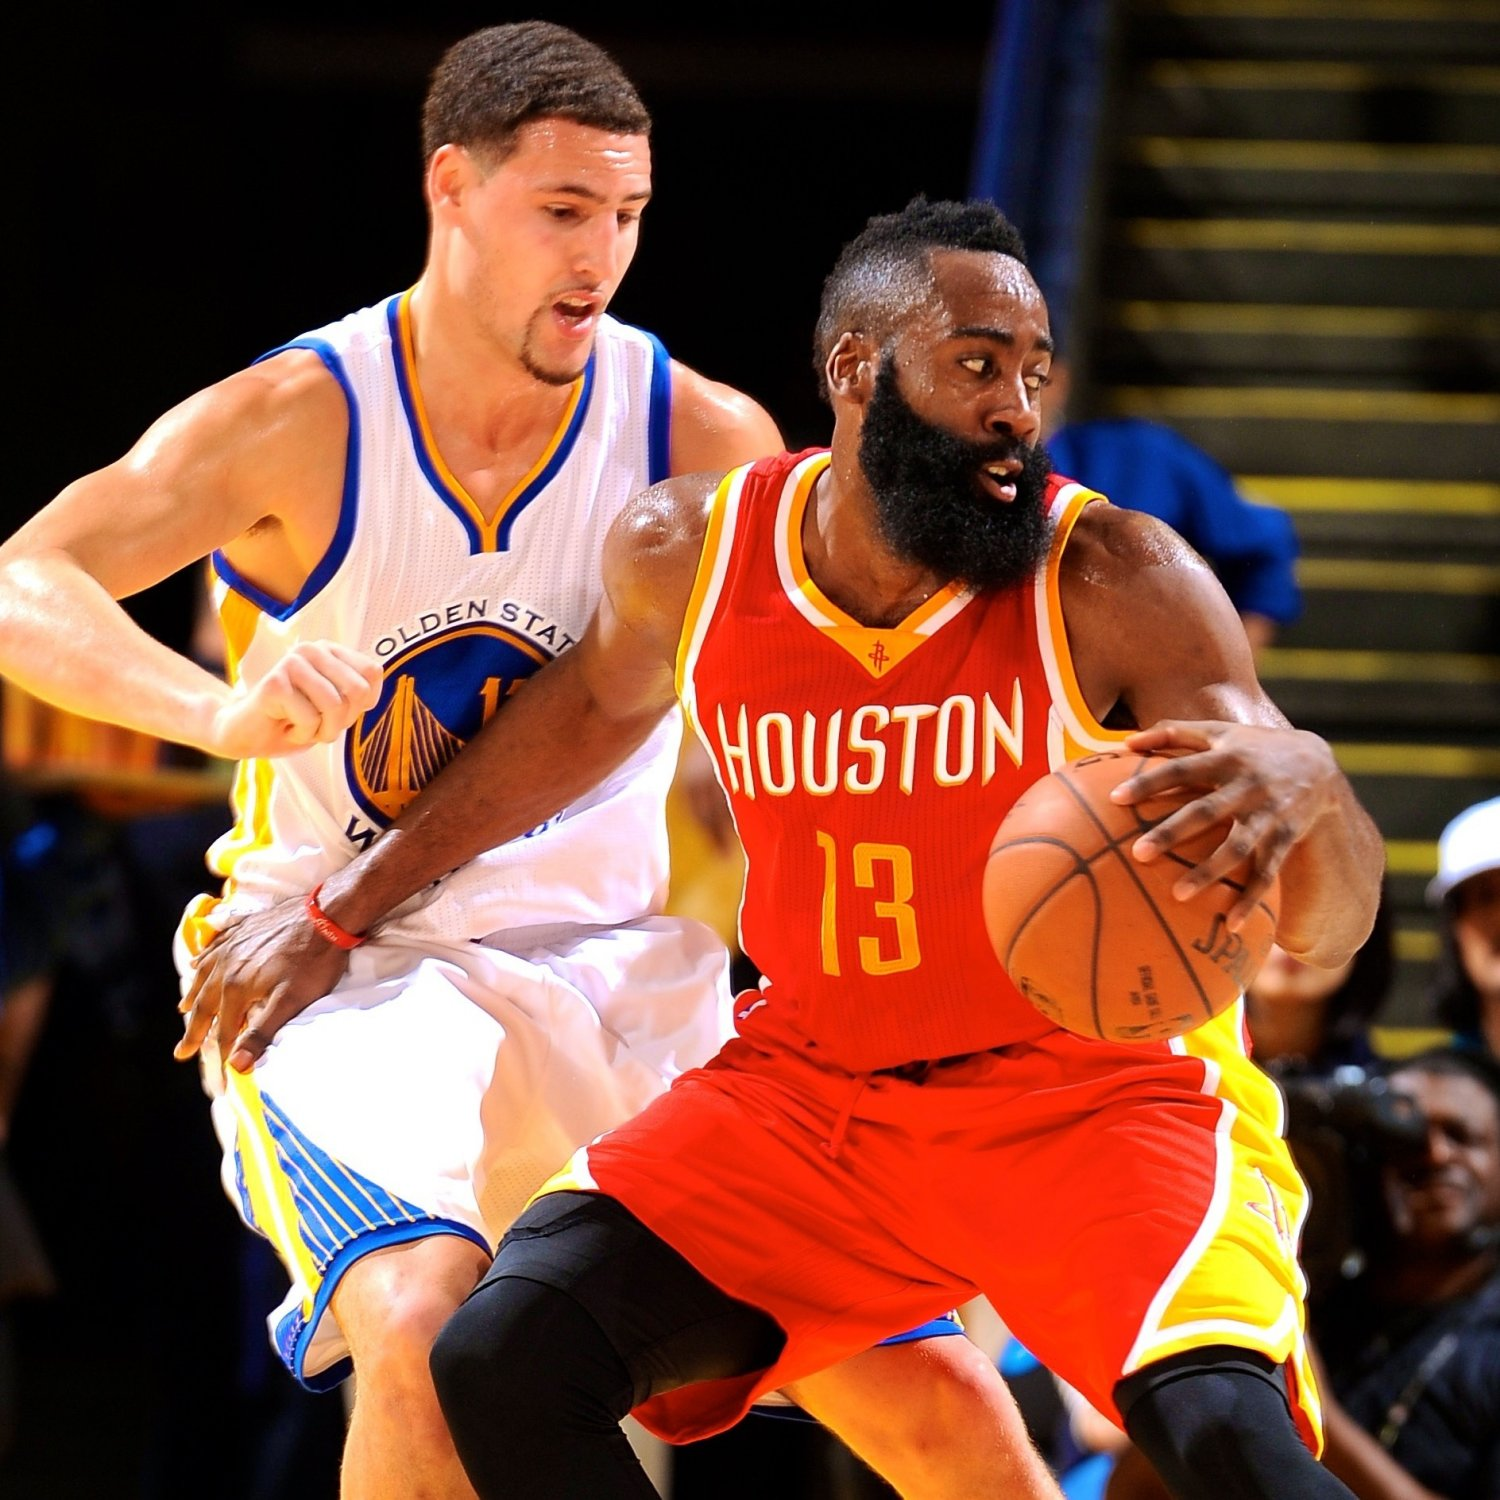 Houston Rockets Vs Golden State Warriors Lineup: Houston Rockets Vs. Golden State Warriors: Live Score